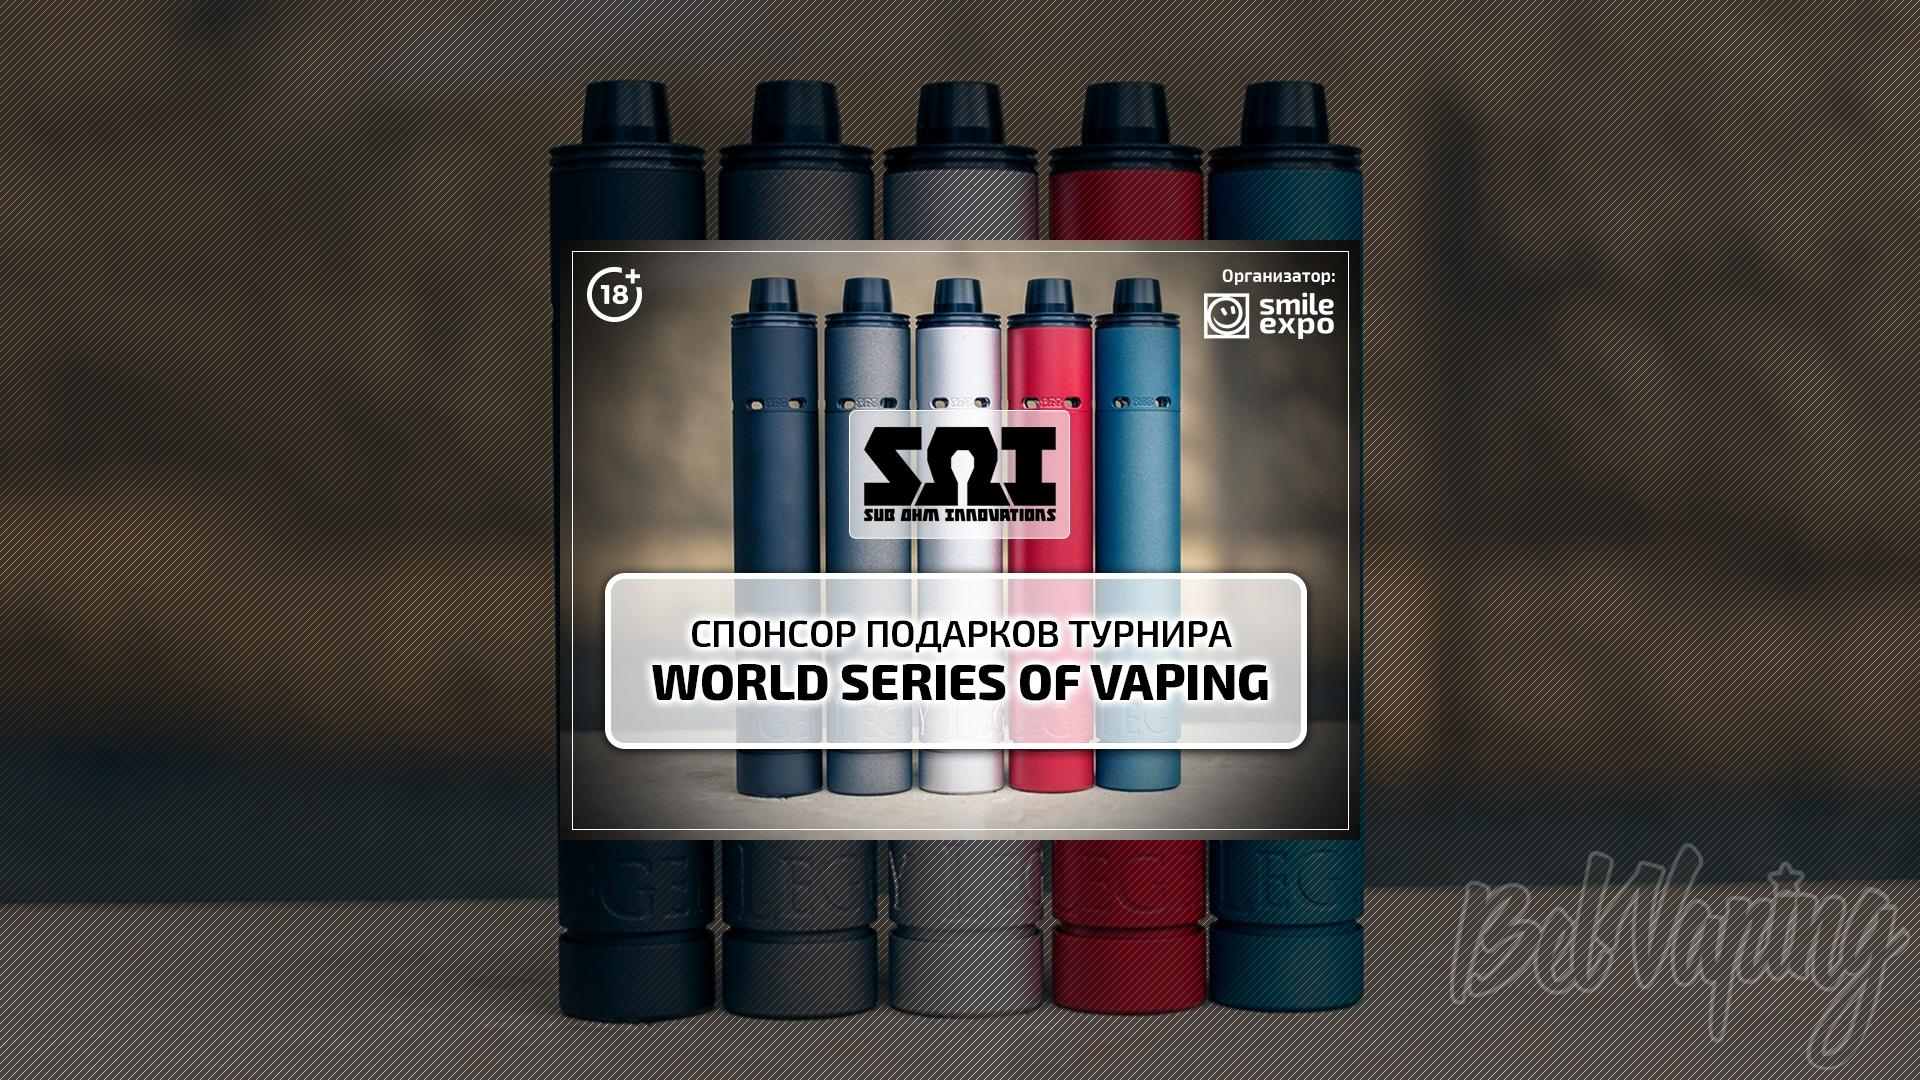 Sub Ohm Innovations - спонсор подарков турнира World Series Of Vaping